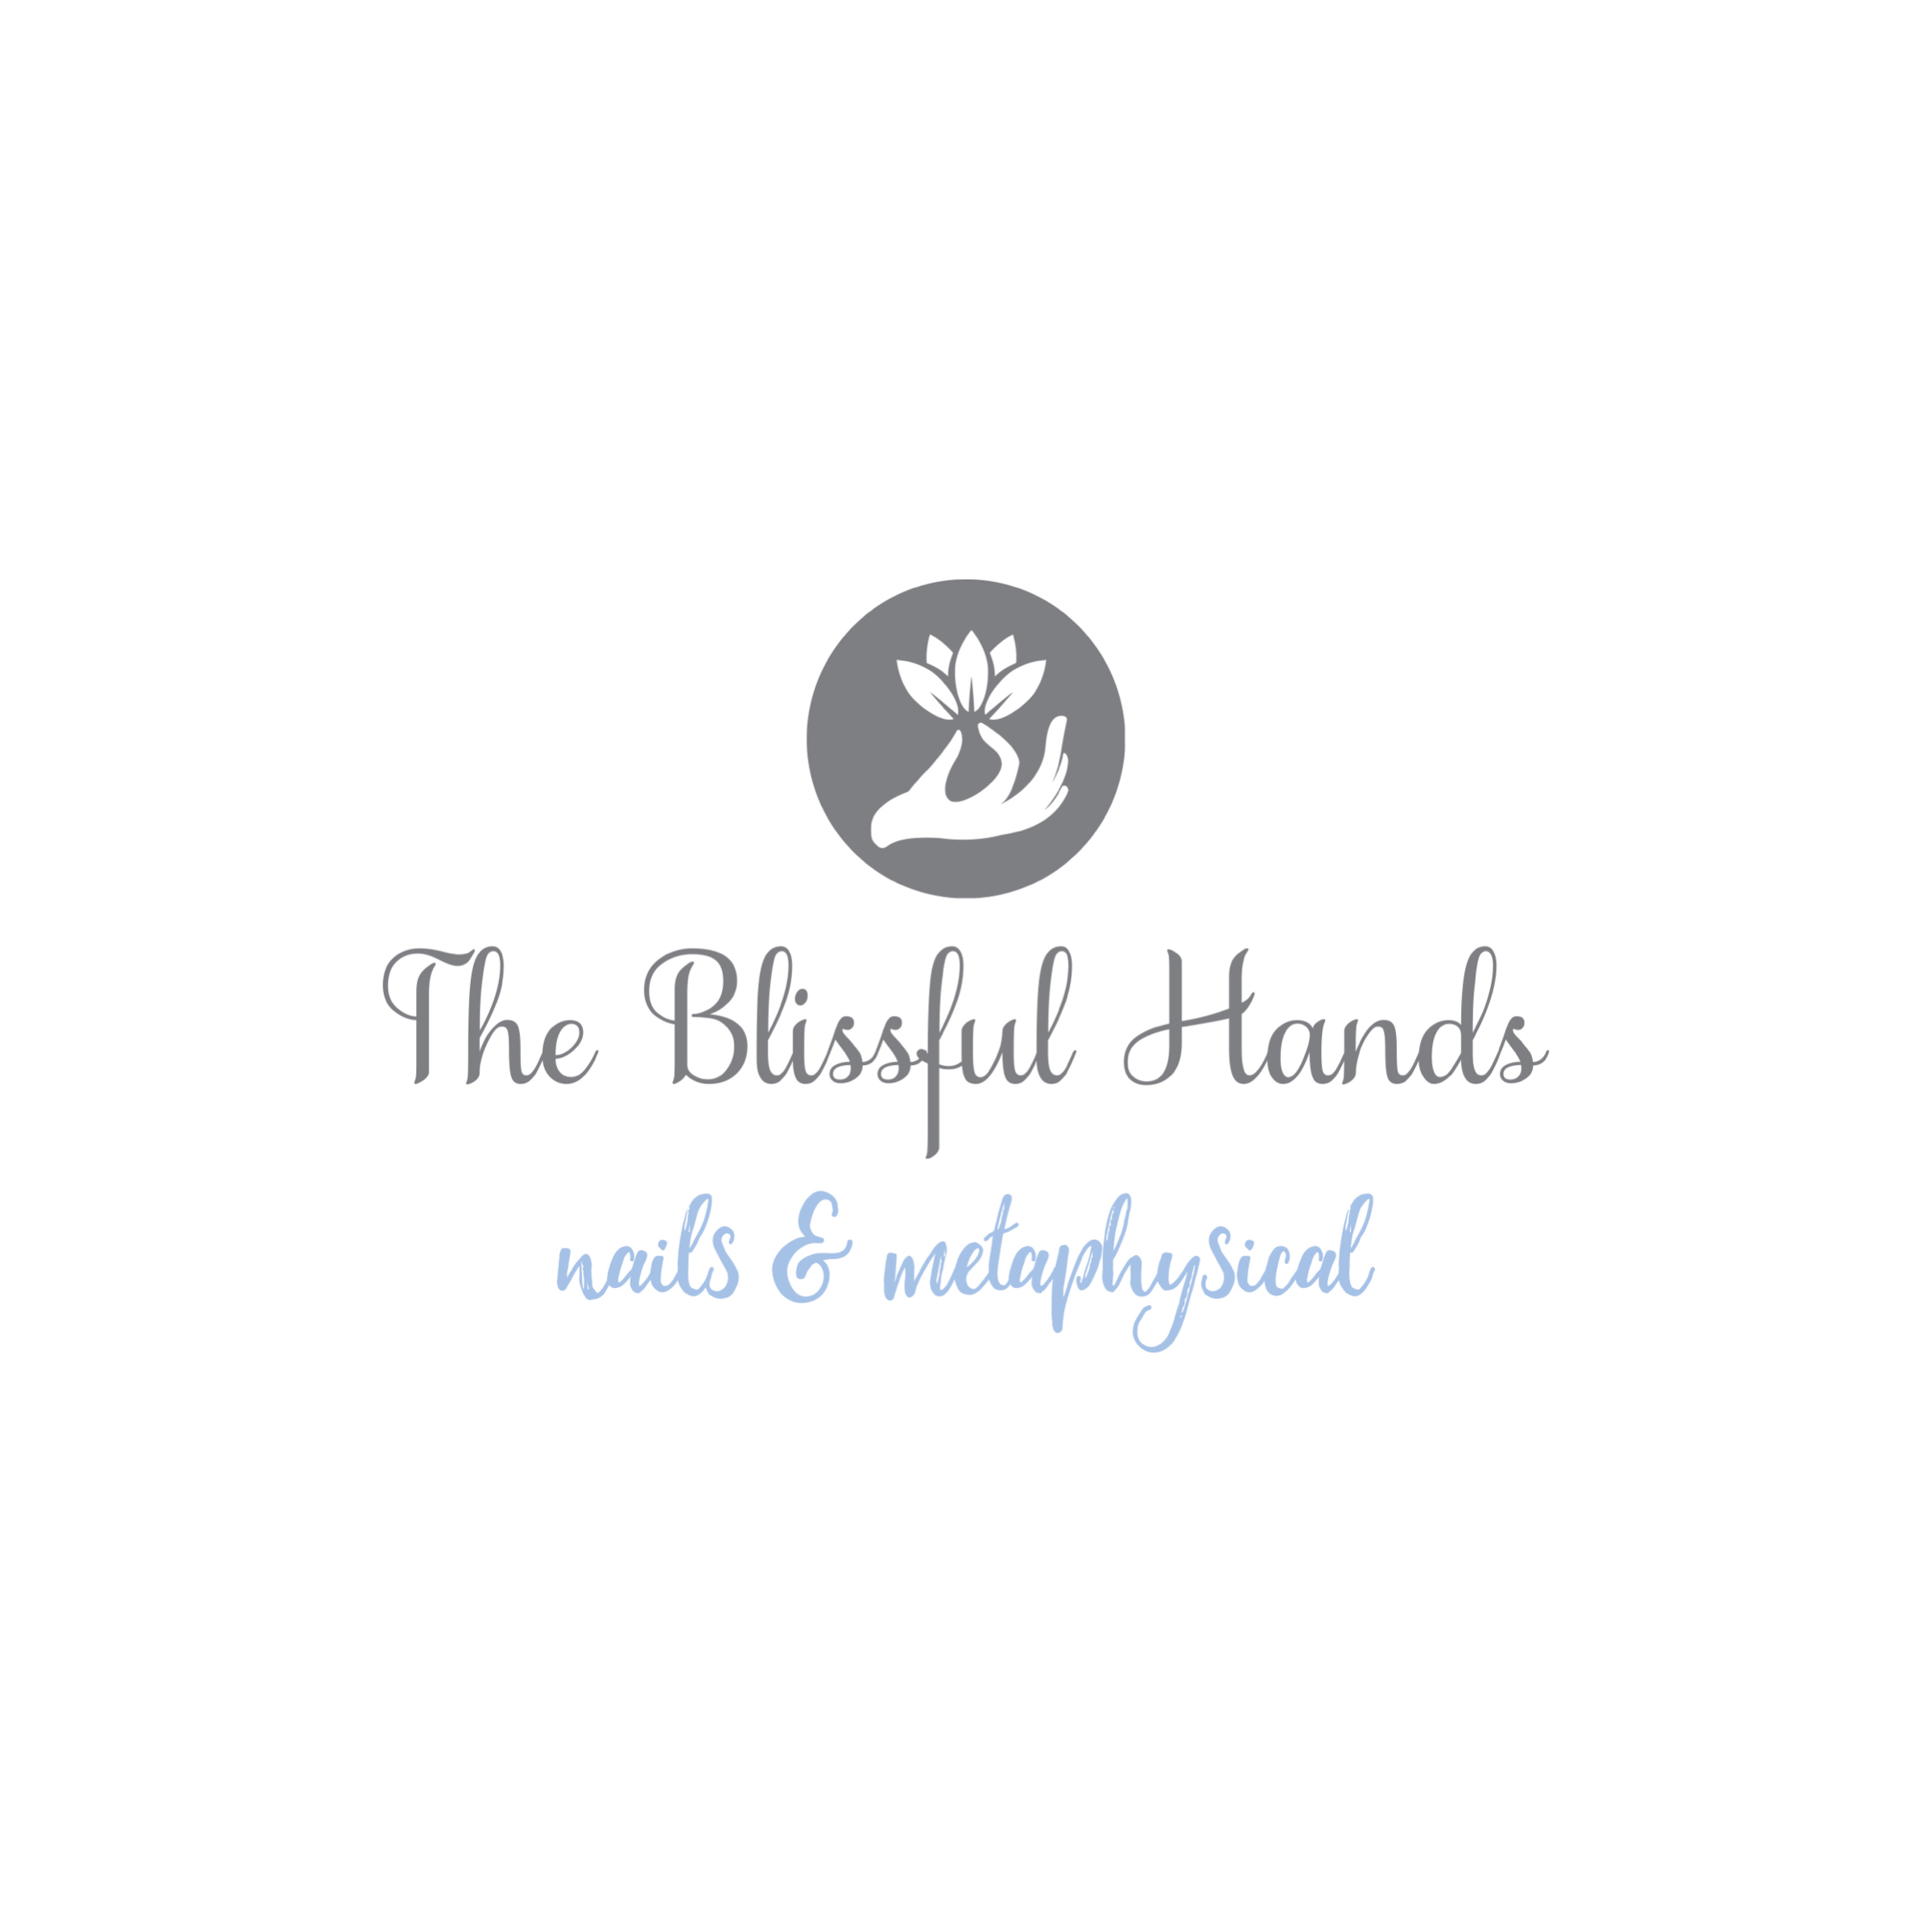 The Blissful Hands - Nails & Metaphysical